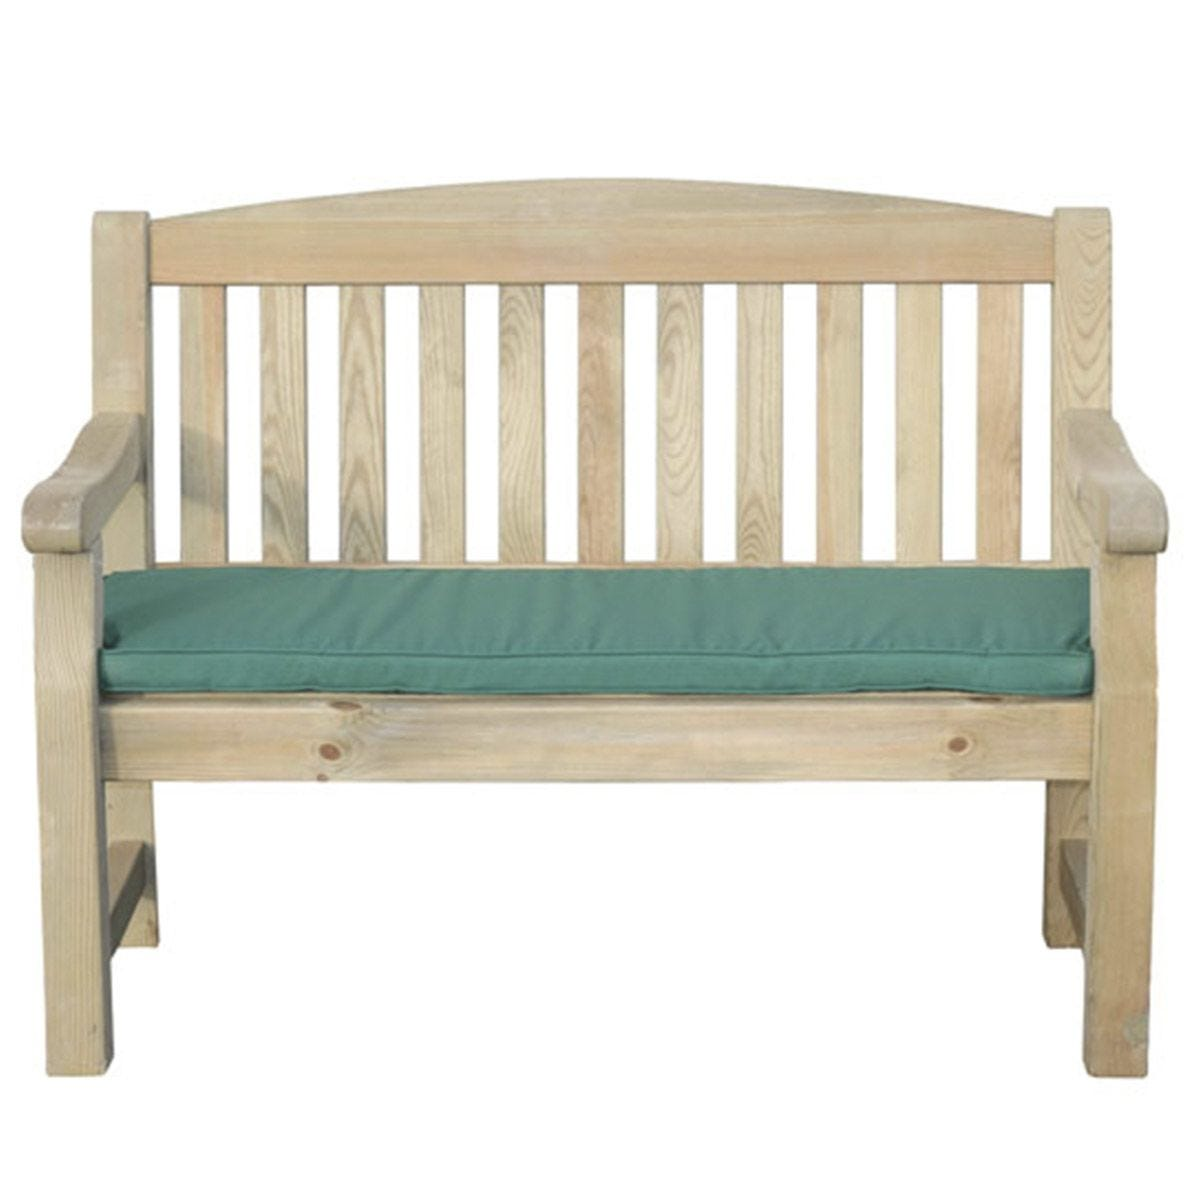 Zest4Leisure Emily 2-Seater Bench and Cushion - Green